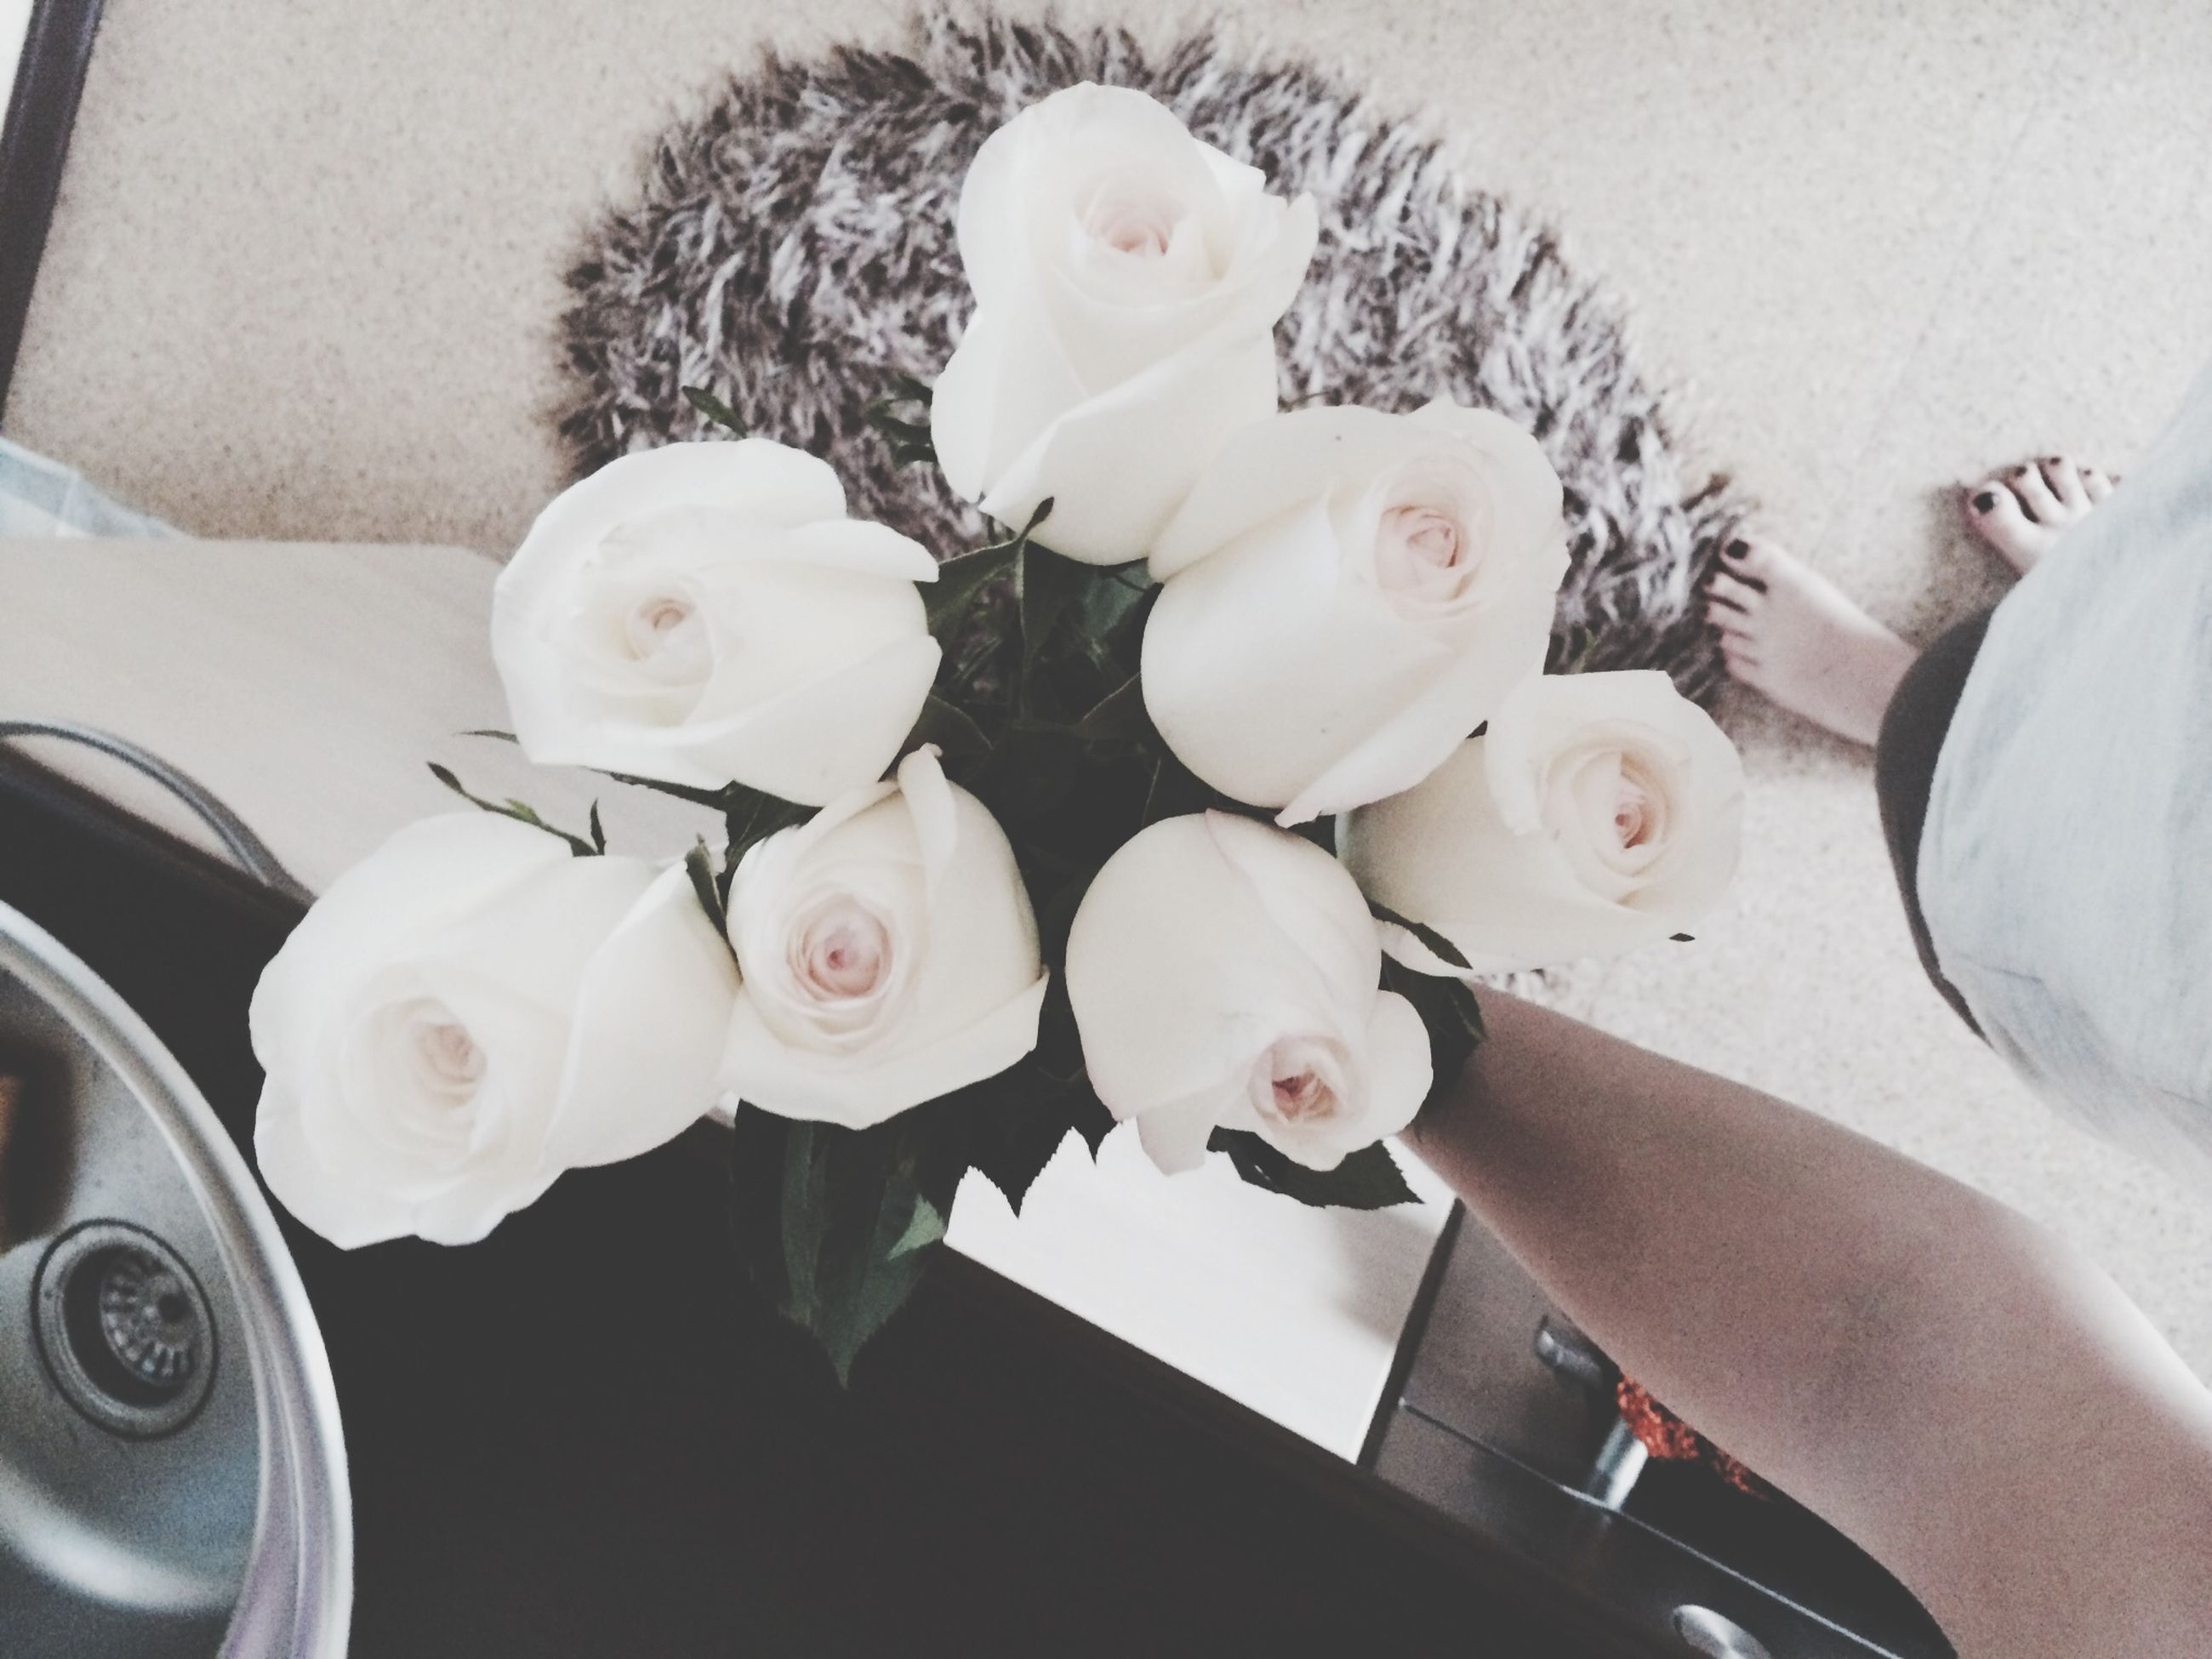 indoors, flower, high angle view, freshness, table, variation, still life, white color, vase, bouquet, fragility, petal, close-up, choice, arrangement, no people, directly above, flower arrangement, large group of objects, toy